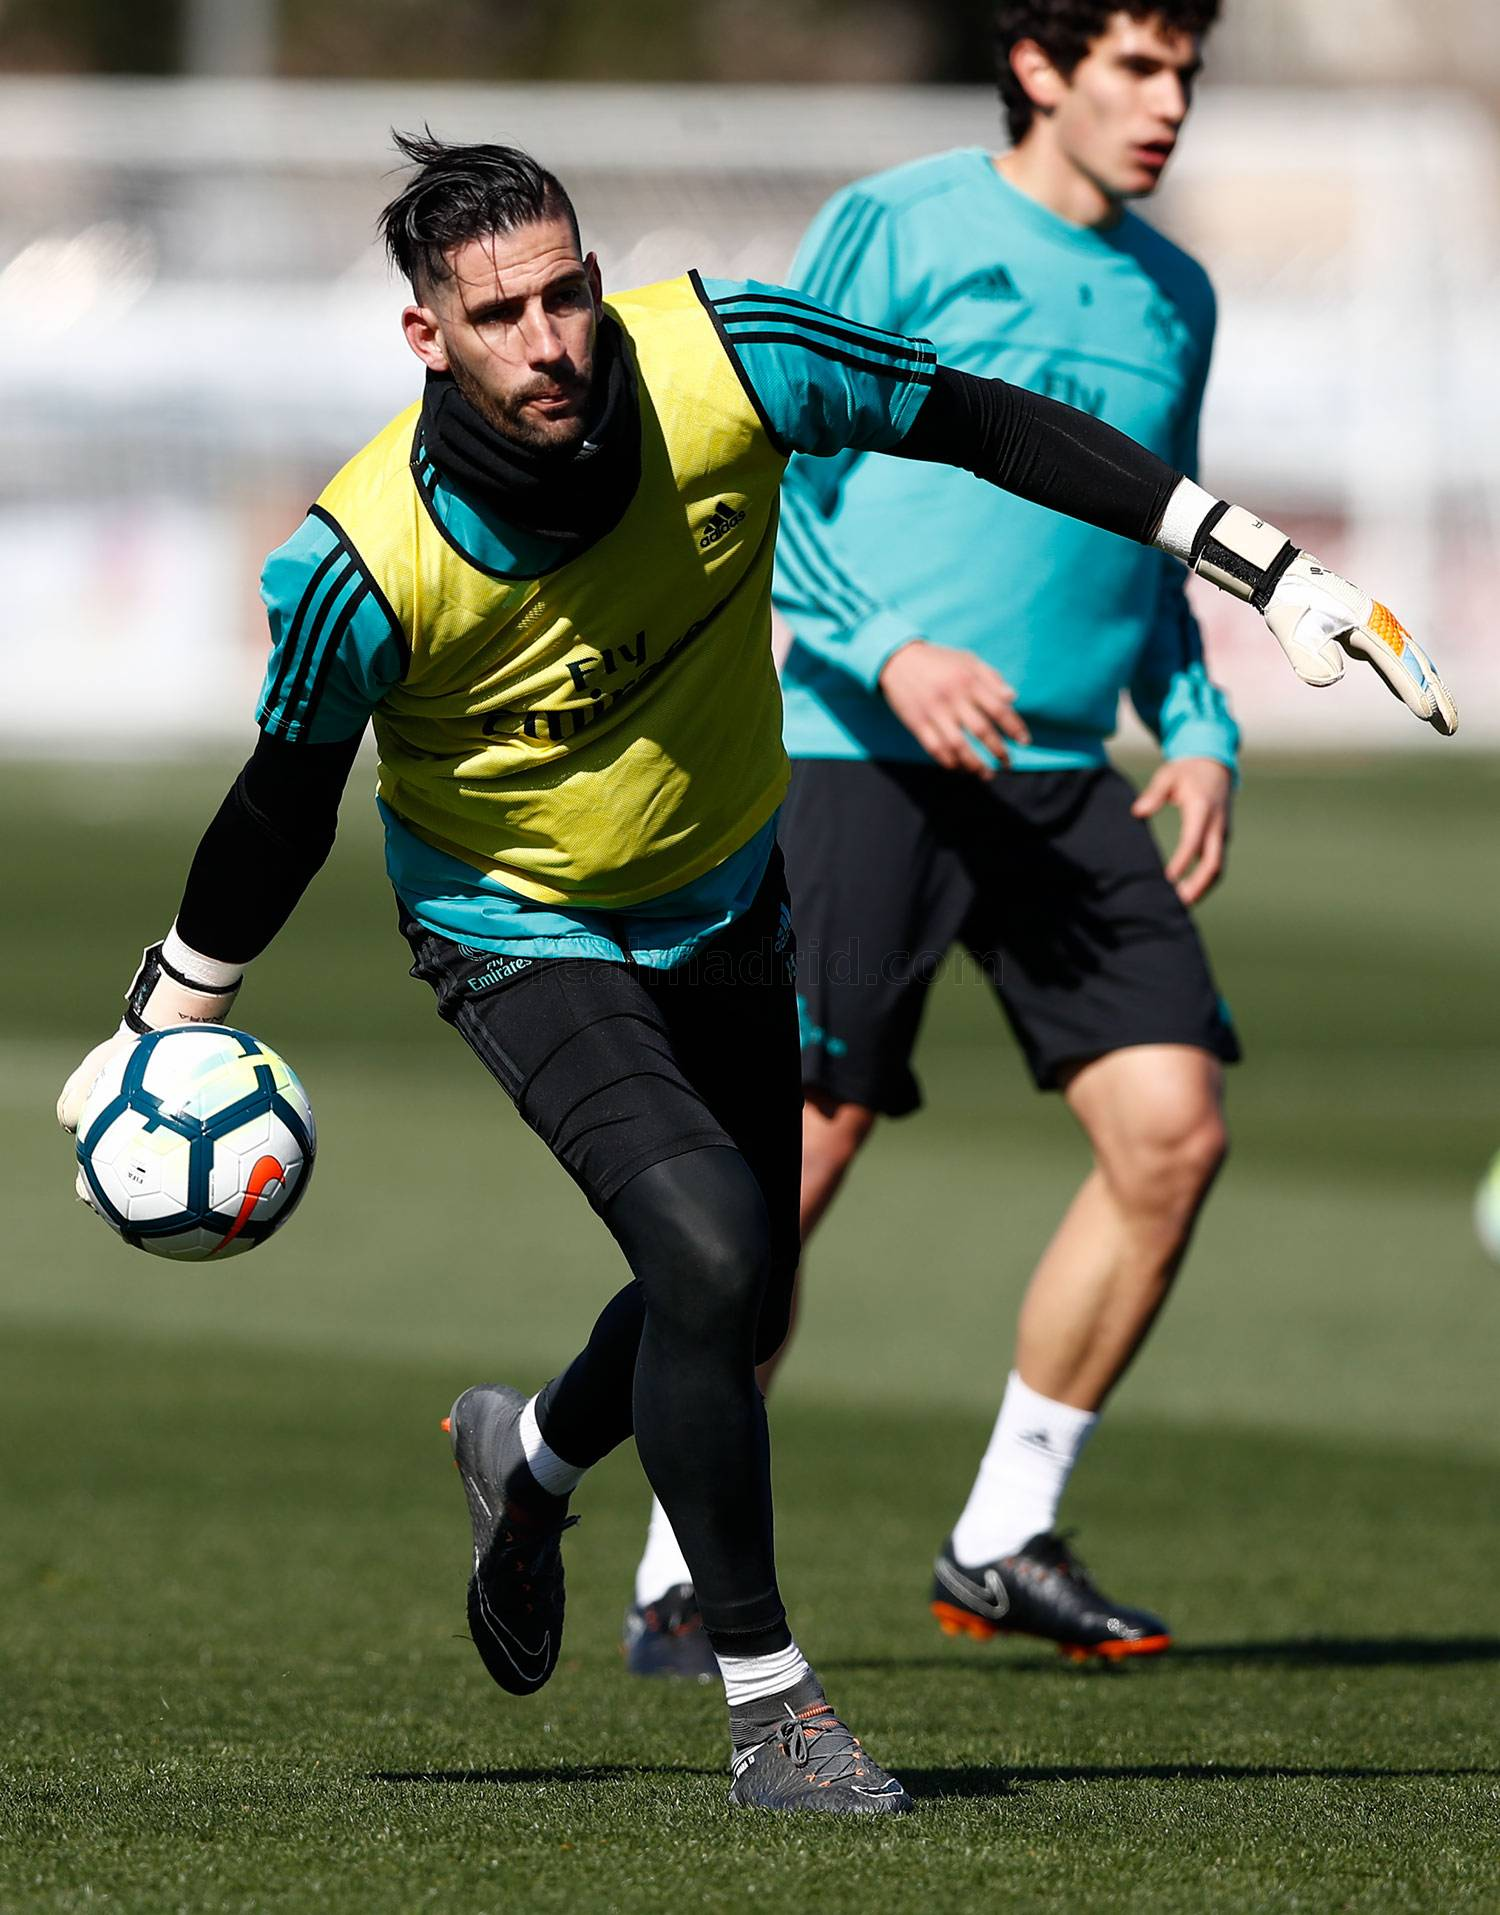 Real Madrid - Entrenamiento del Real Madrid - 30-03-2018